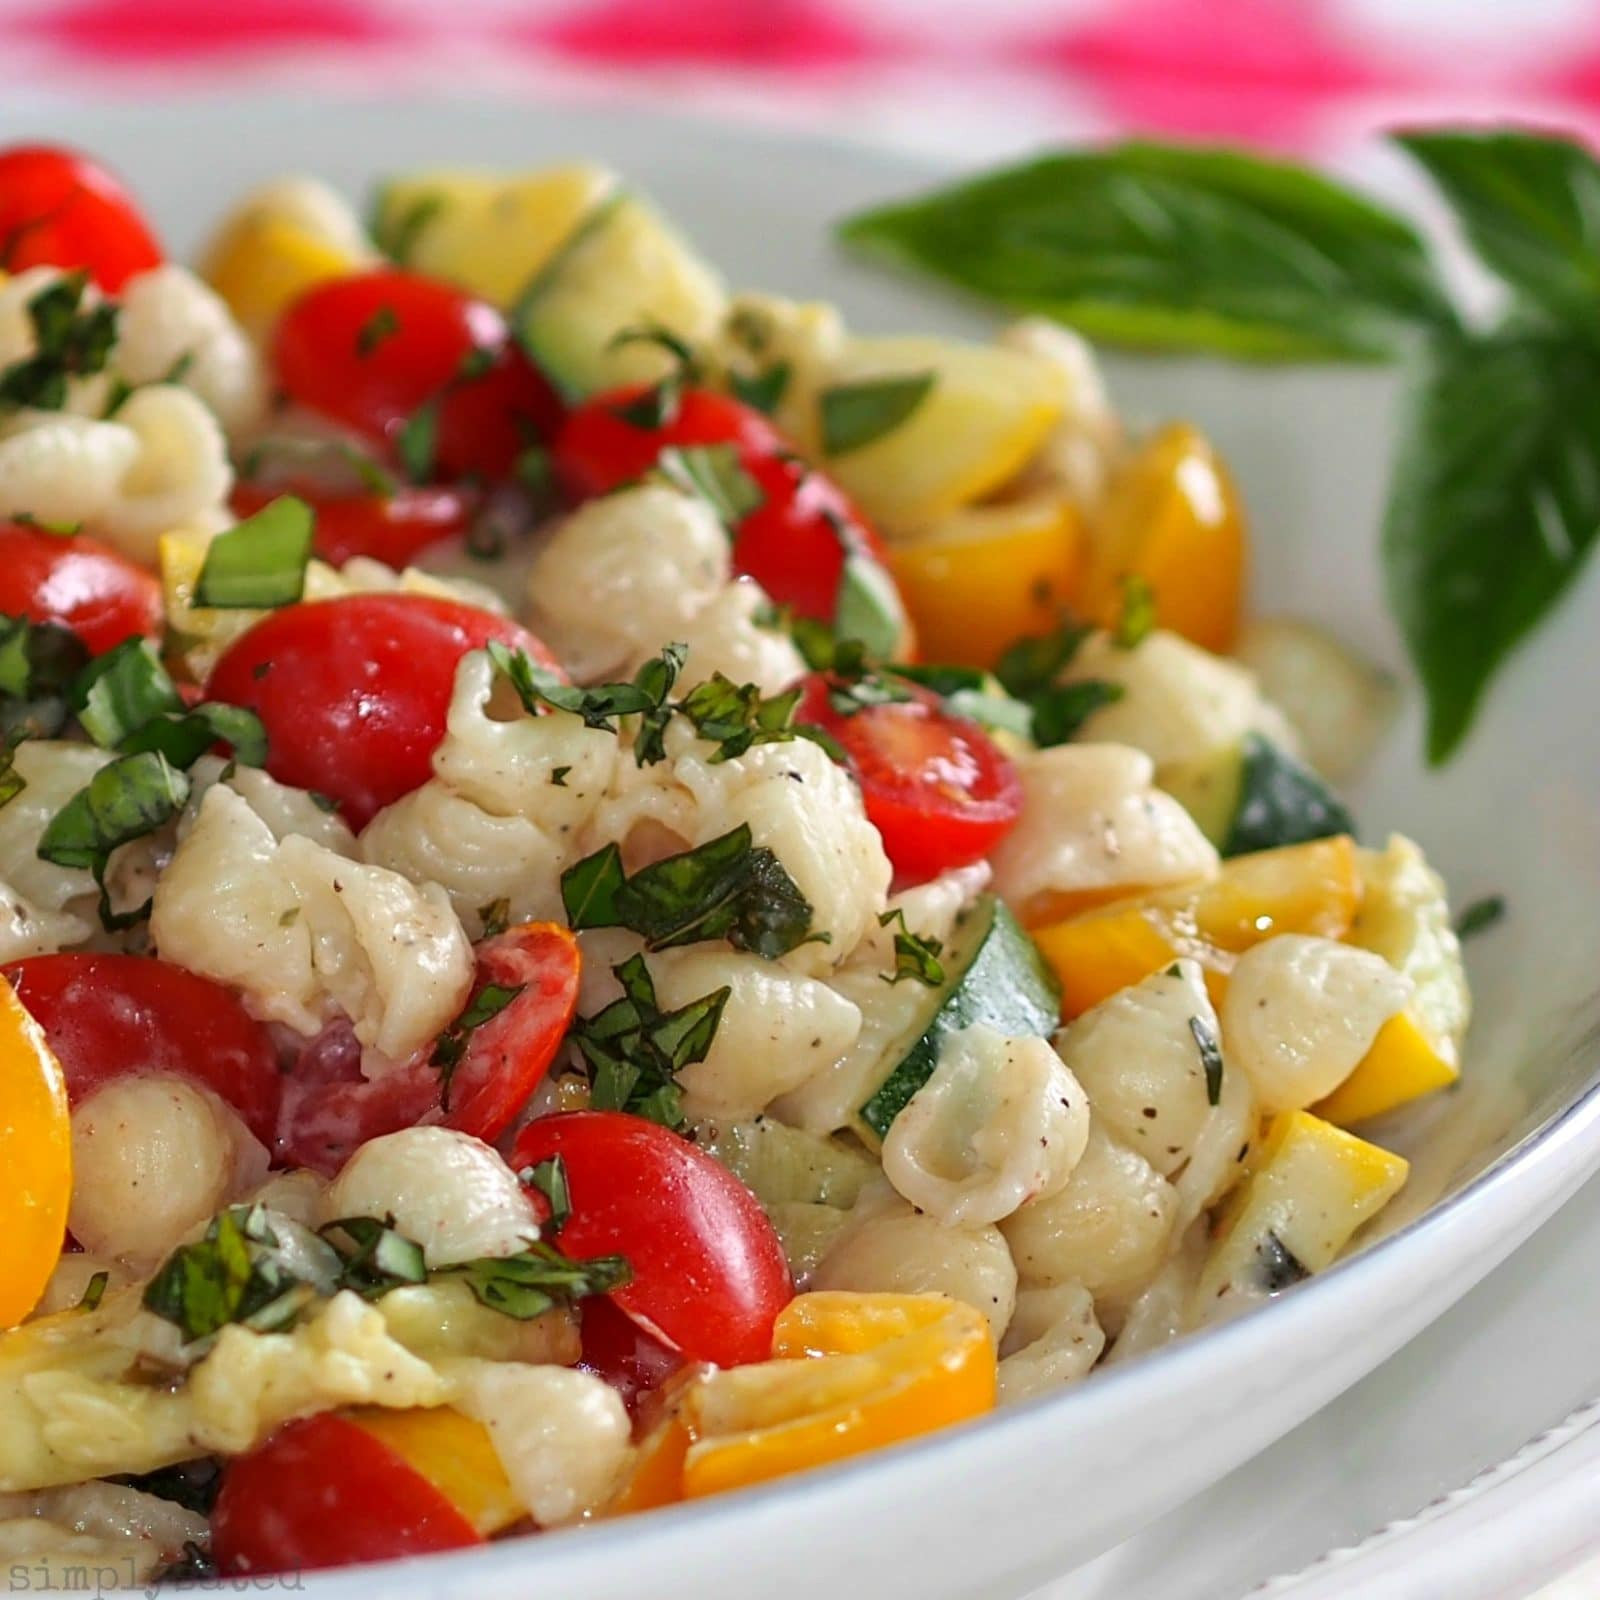 Summertime Pasta Salad  Summer Pasta Salad with Boursin Simply Sated